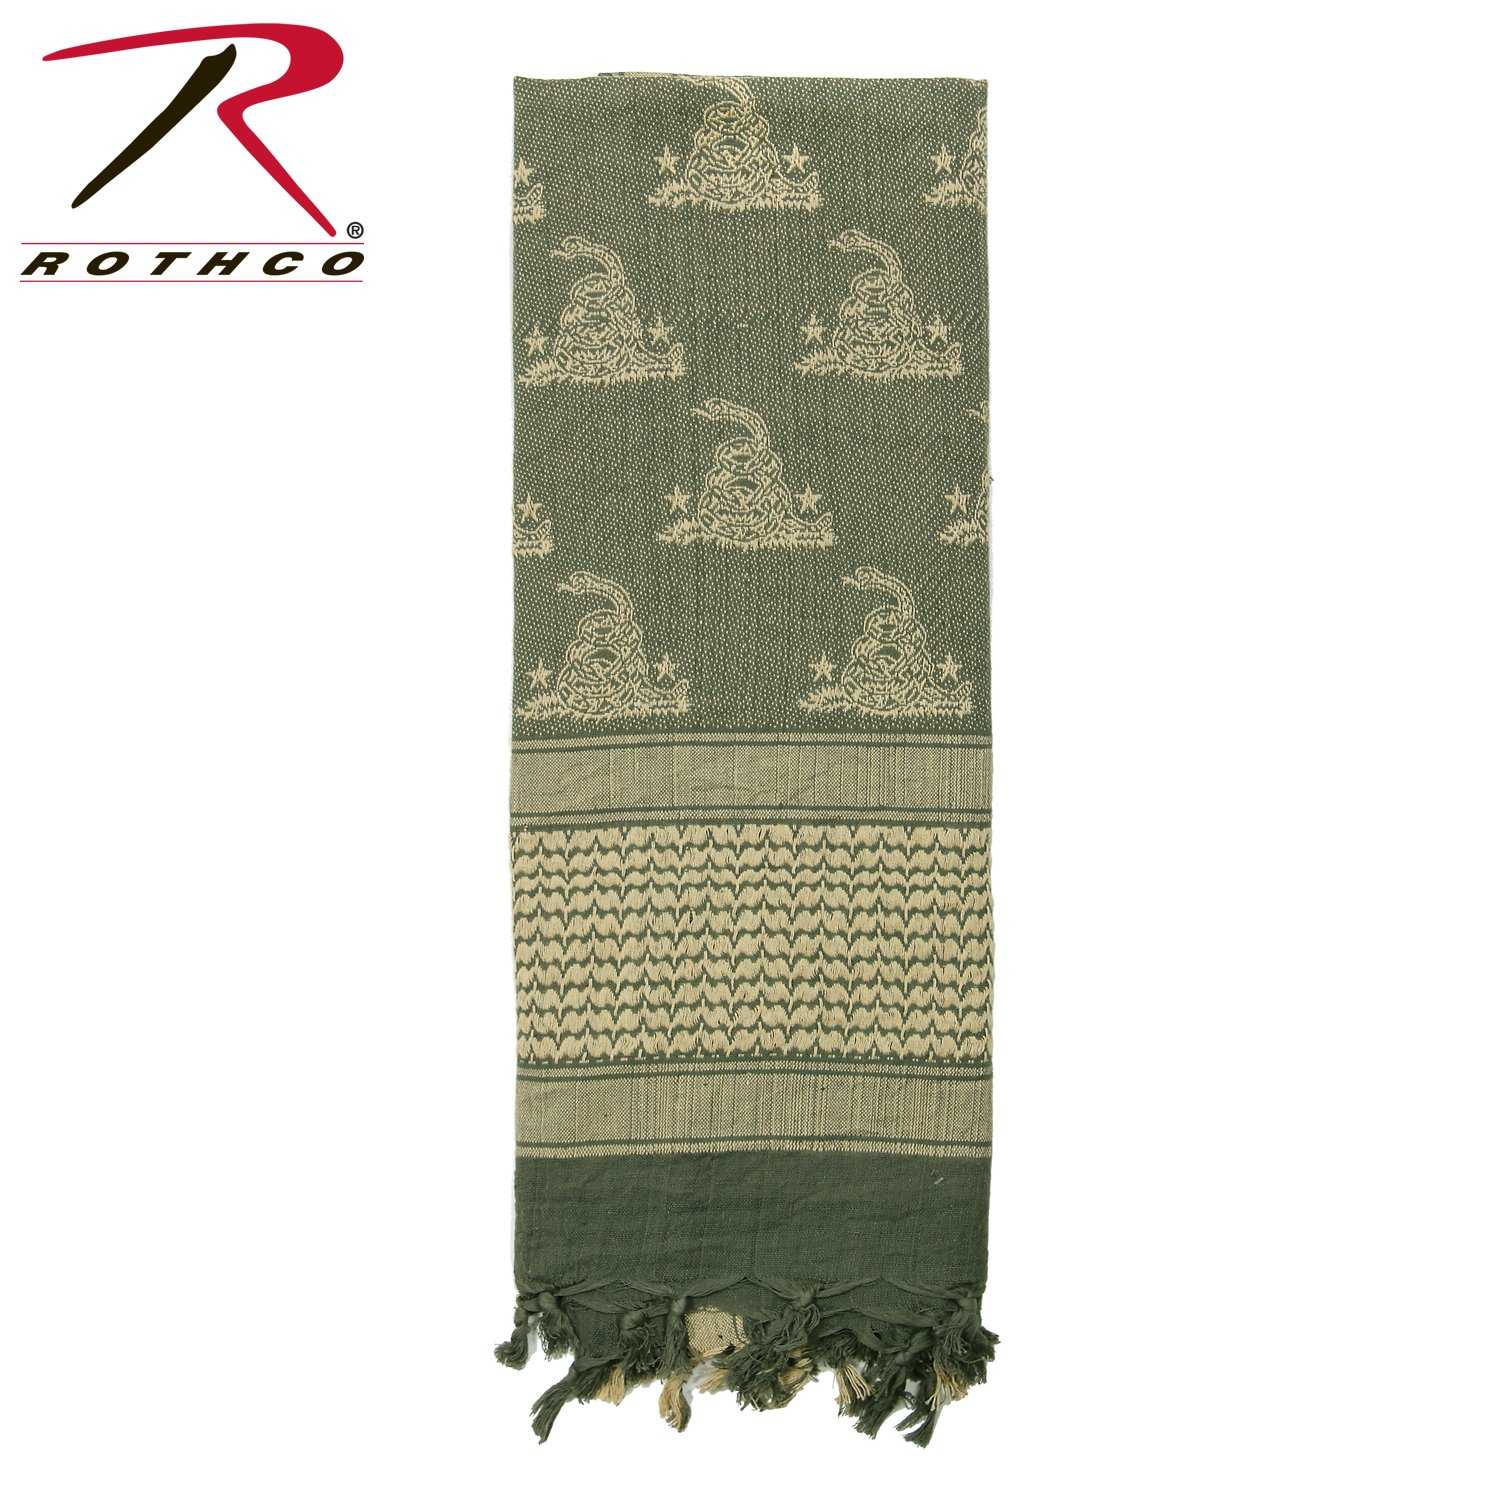 Rothco Gadsden Snake Shemagh Tactical Desert Scarf, Foliage Green